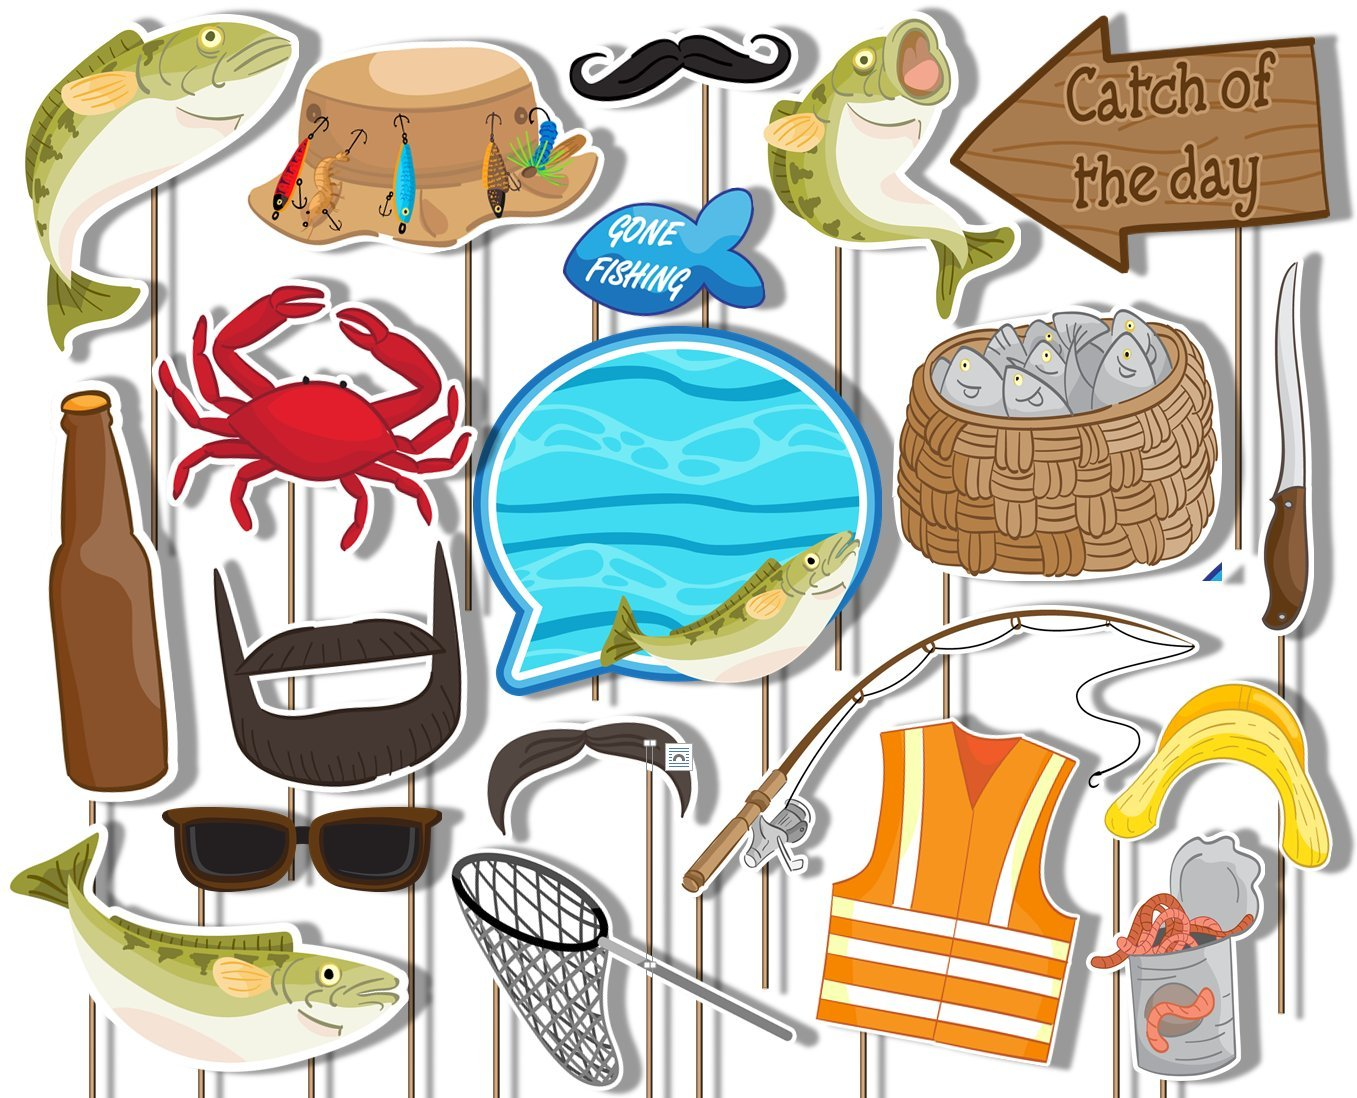 Gone Fishing Photo Booth Props Kit - 20 Pack Party Camera Props Fully Assembled